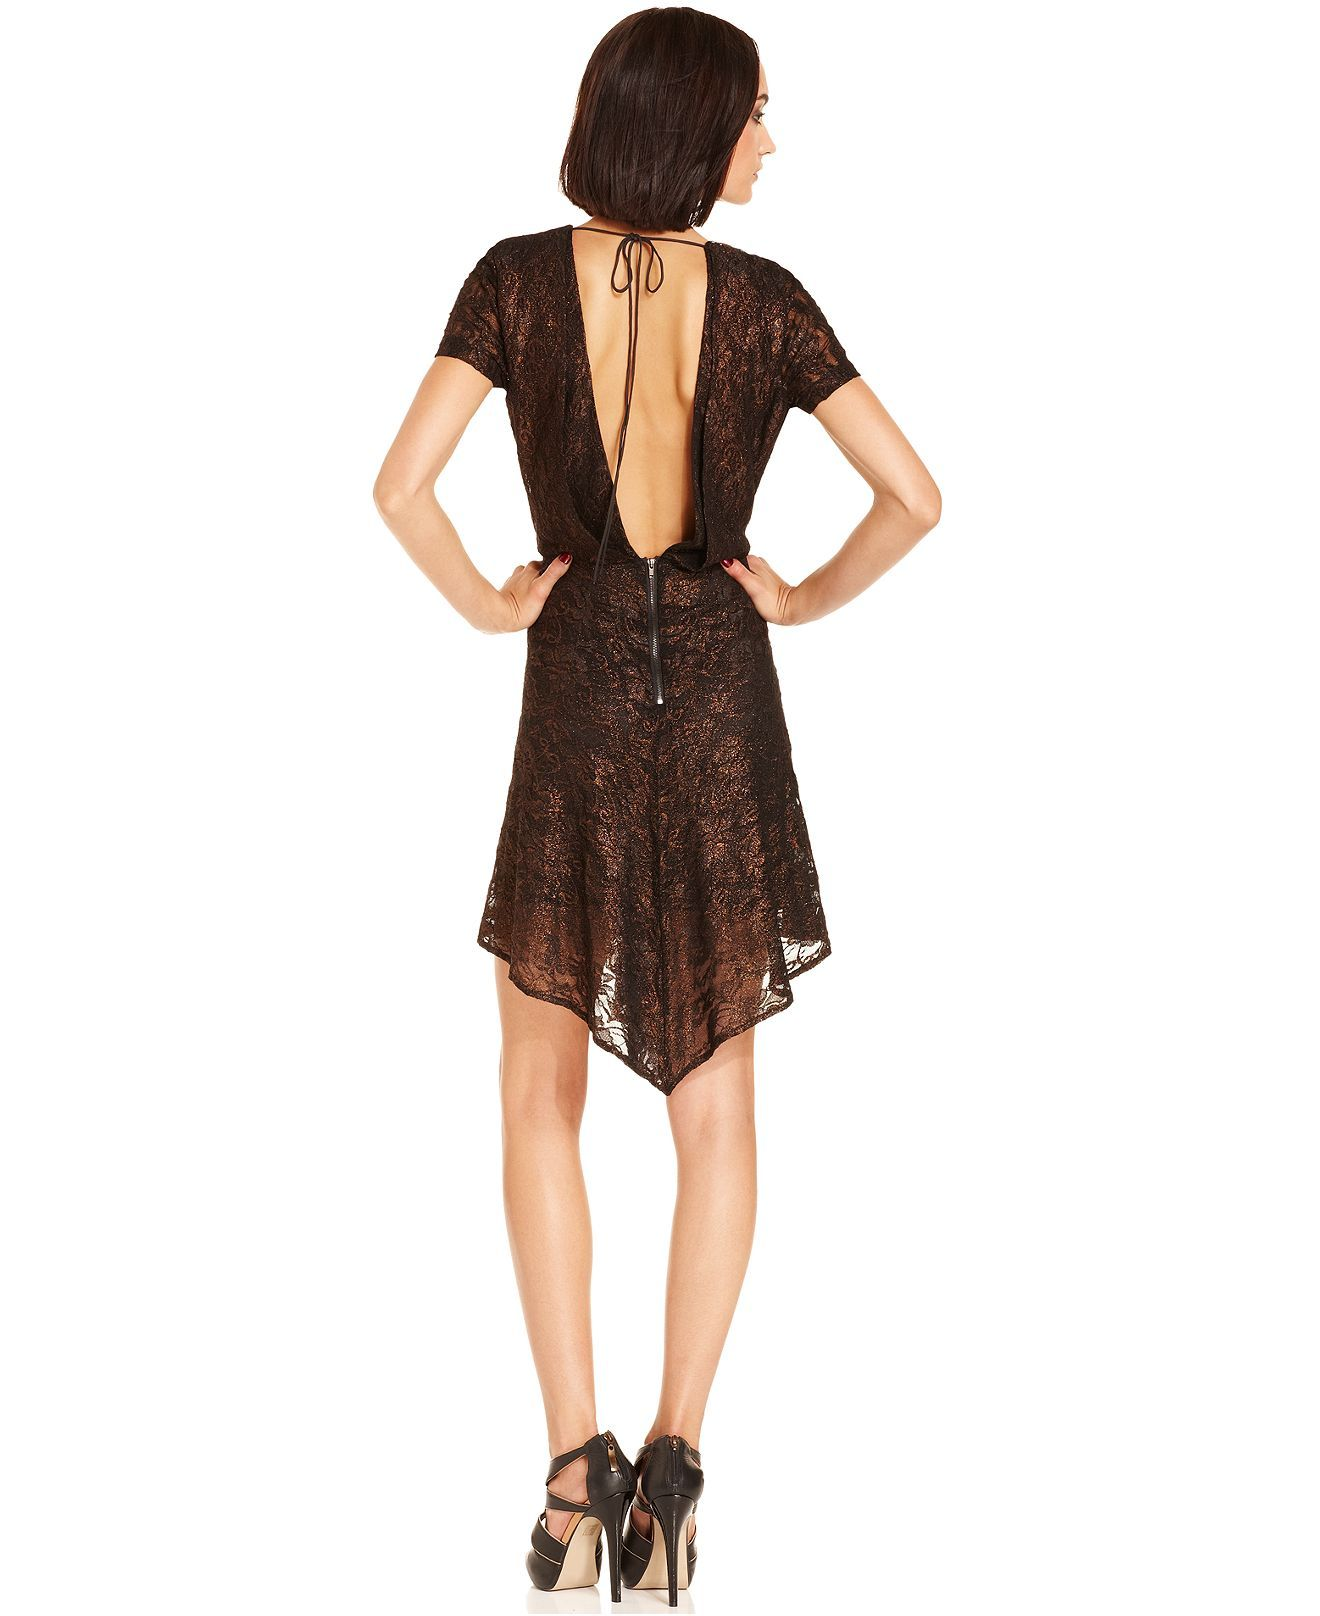 W118 Dress, Adele Short-Sleeve High-Neck Sequined Collar Lace - Womens Dresses - Macy's